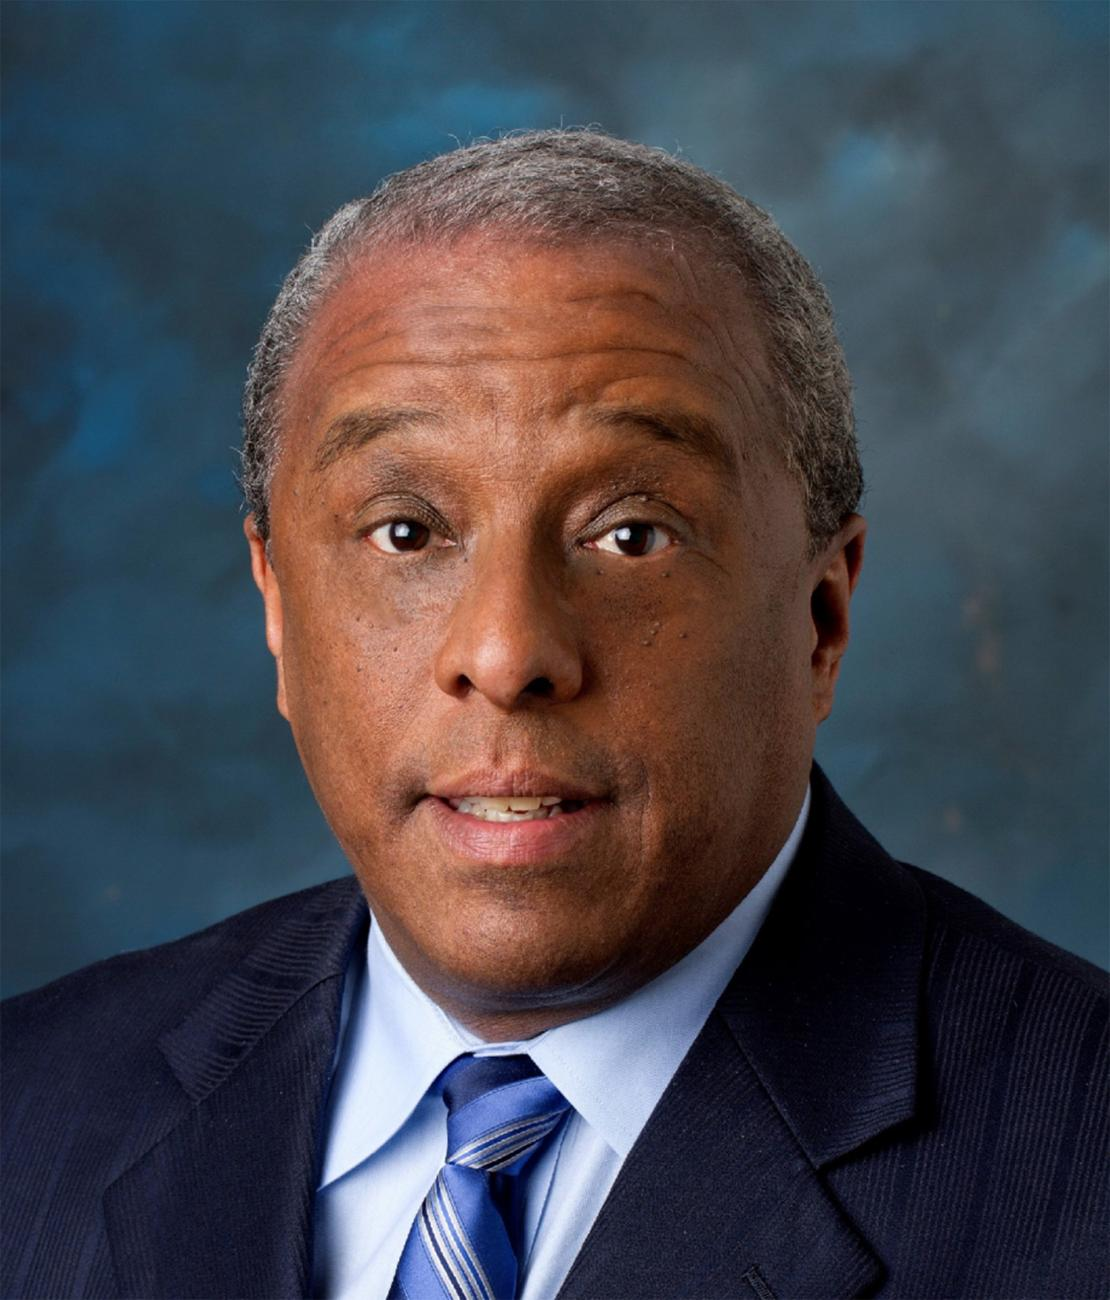 Springfield College welcomes William D. Parham, Ph.D., ABPP, the inaugural Director of the National Basketball Players Association Mental Health and Wellness Program and Professor in the Counseling Program at Loyola Marymount University to the campus on Sept. 24, 2019, at 7:30 p.m., in the Fuller Arts Center.